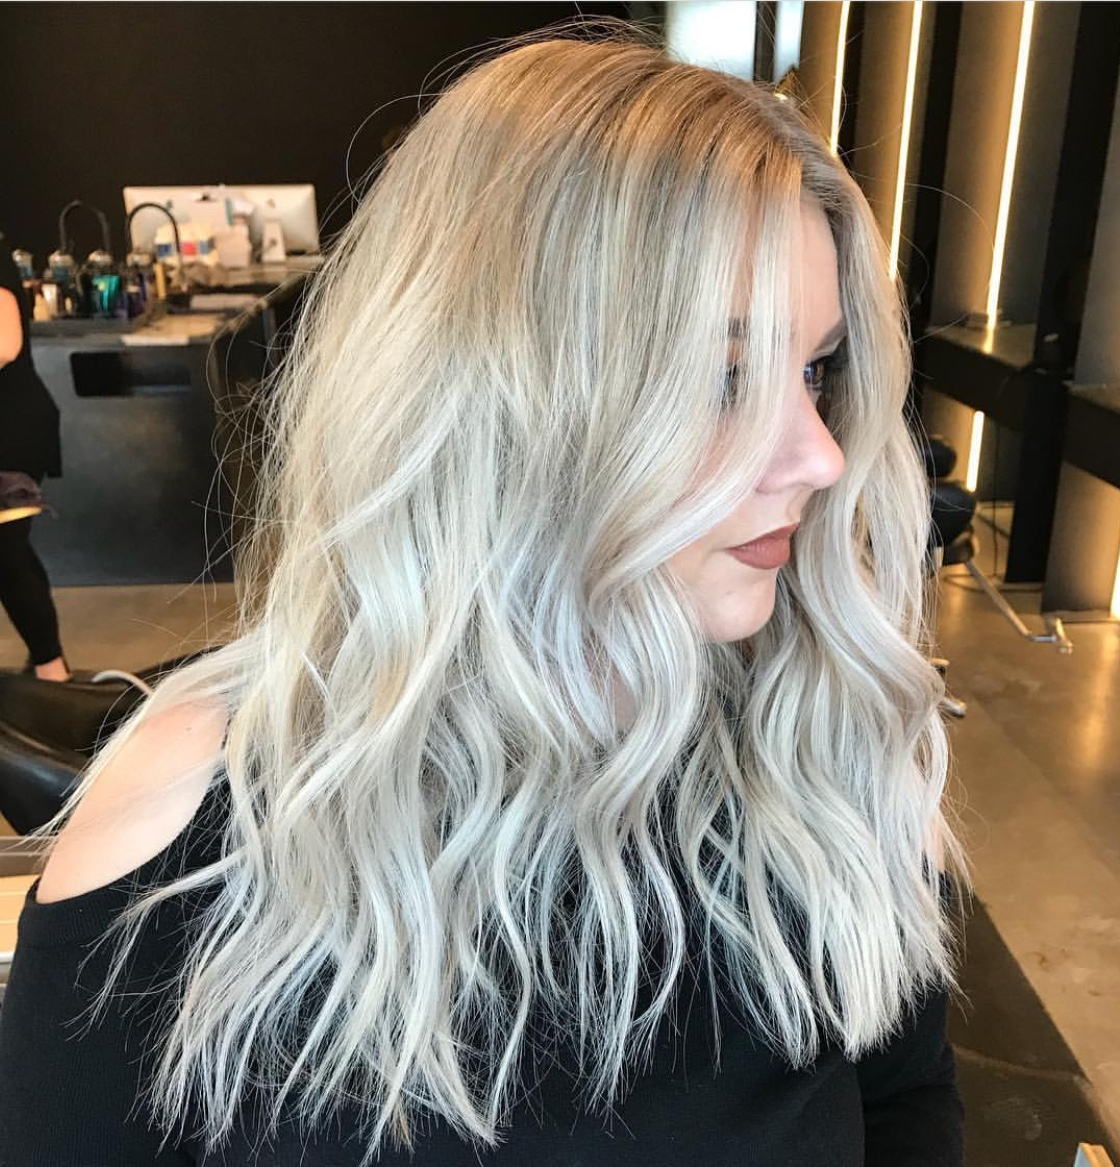 Blonde Hair Trends 2018: Before And After Photos